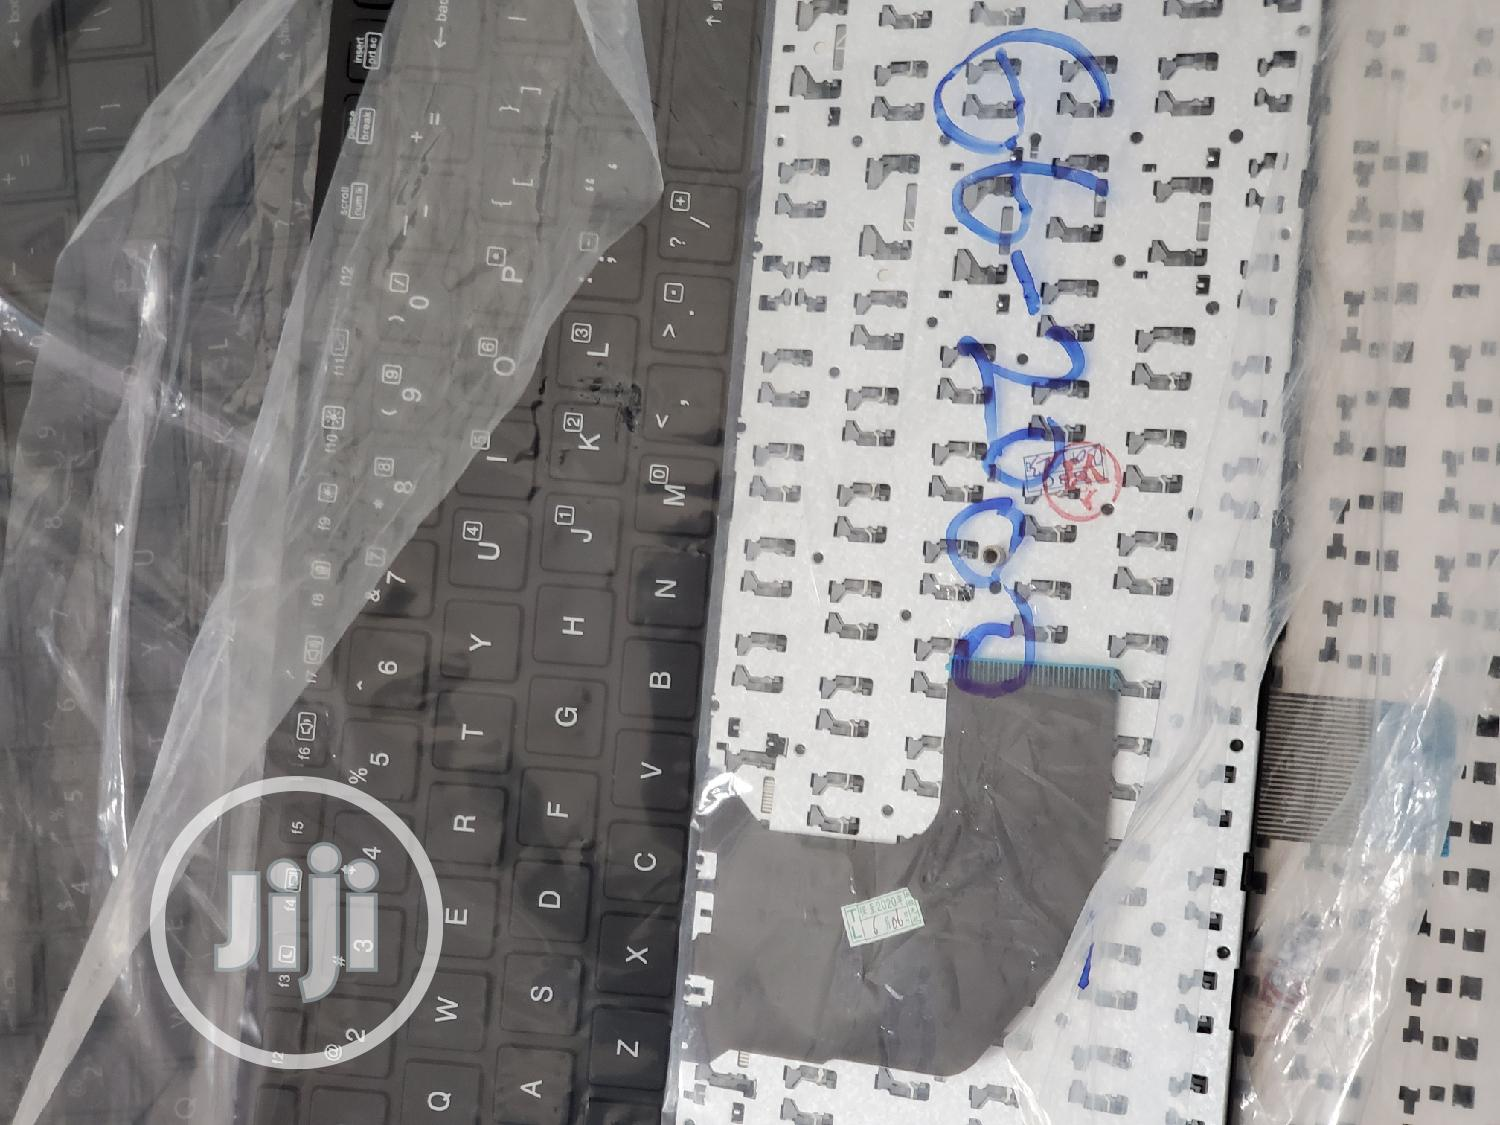 HP, Dell, Toshiba And Lenovo Laptop Keyboards | Computer Accessories  for sale in Ajah, Lagos State, Nigeria